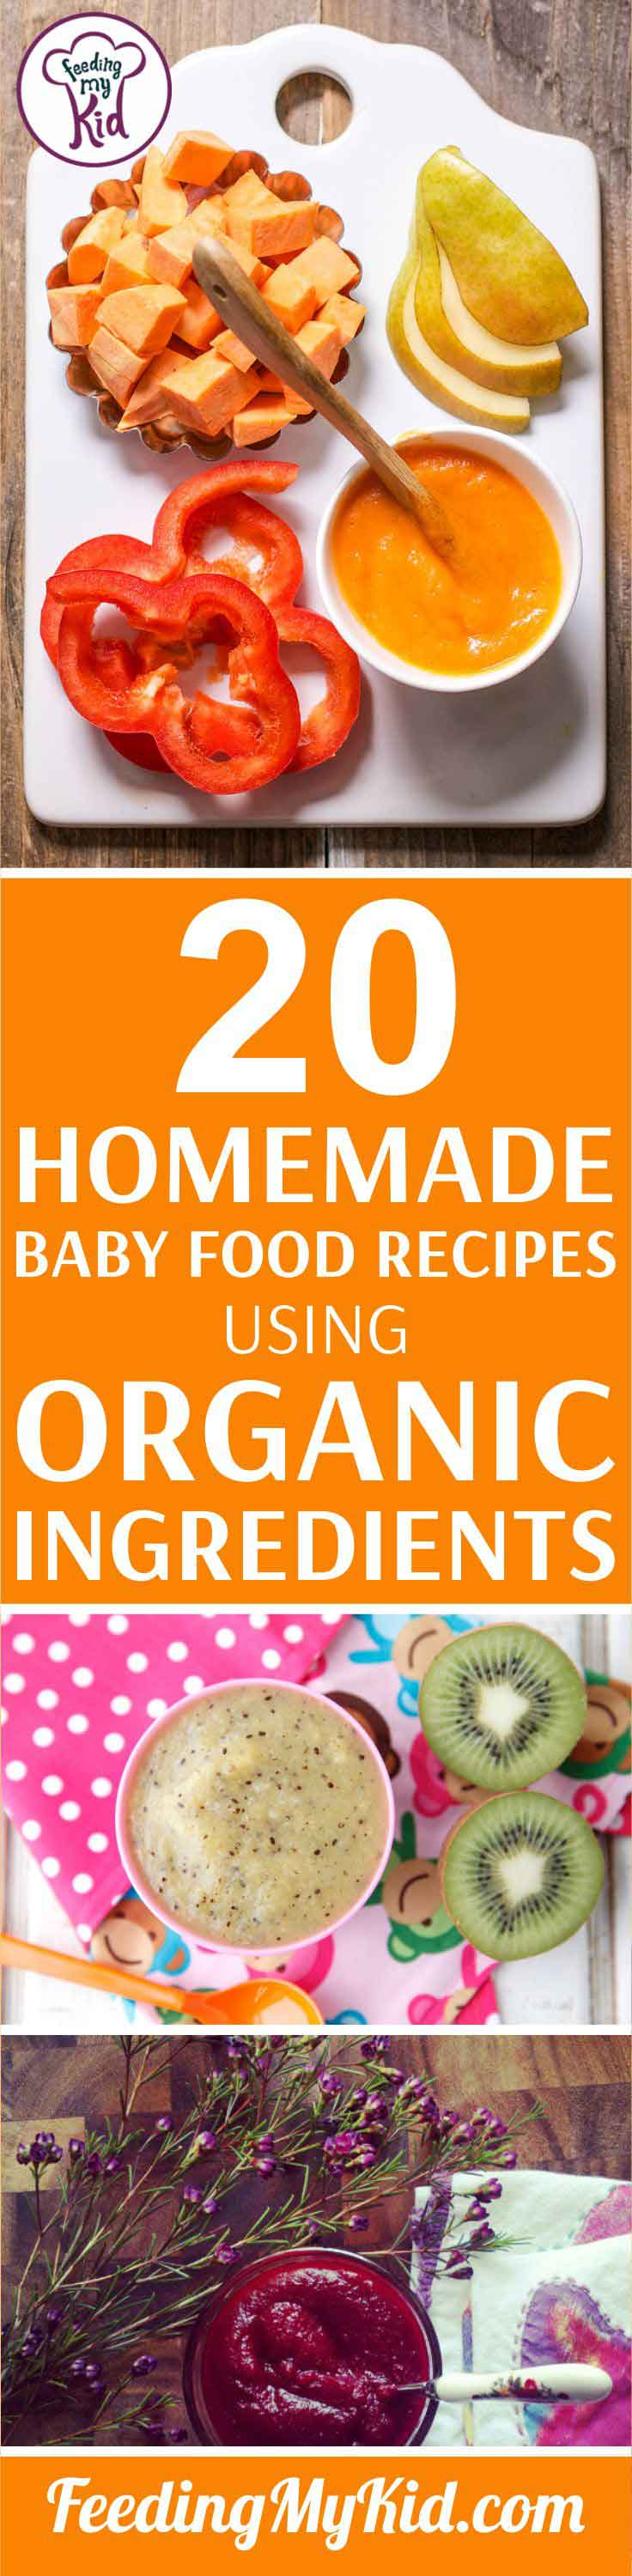 Many families prefer to eat organic. If you're looking for organic baby food recipes, this list is for you! This list uses all organic ingredients.